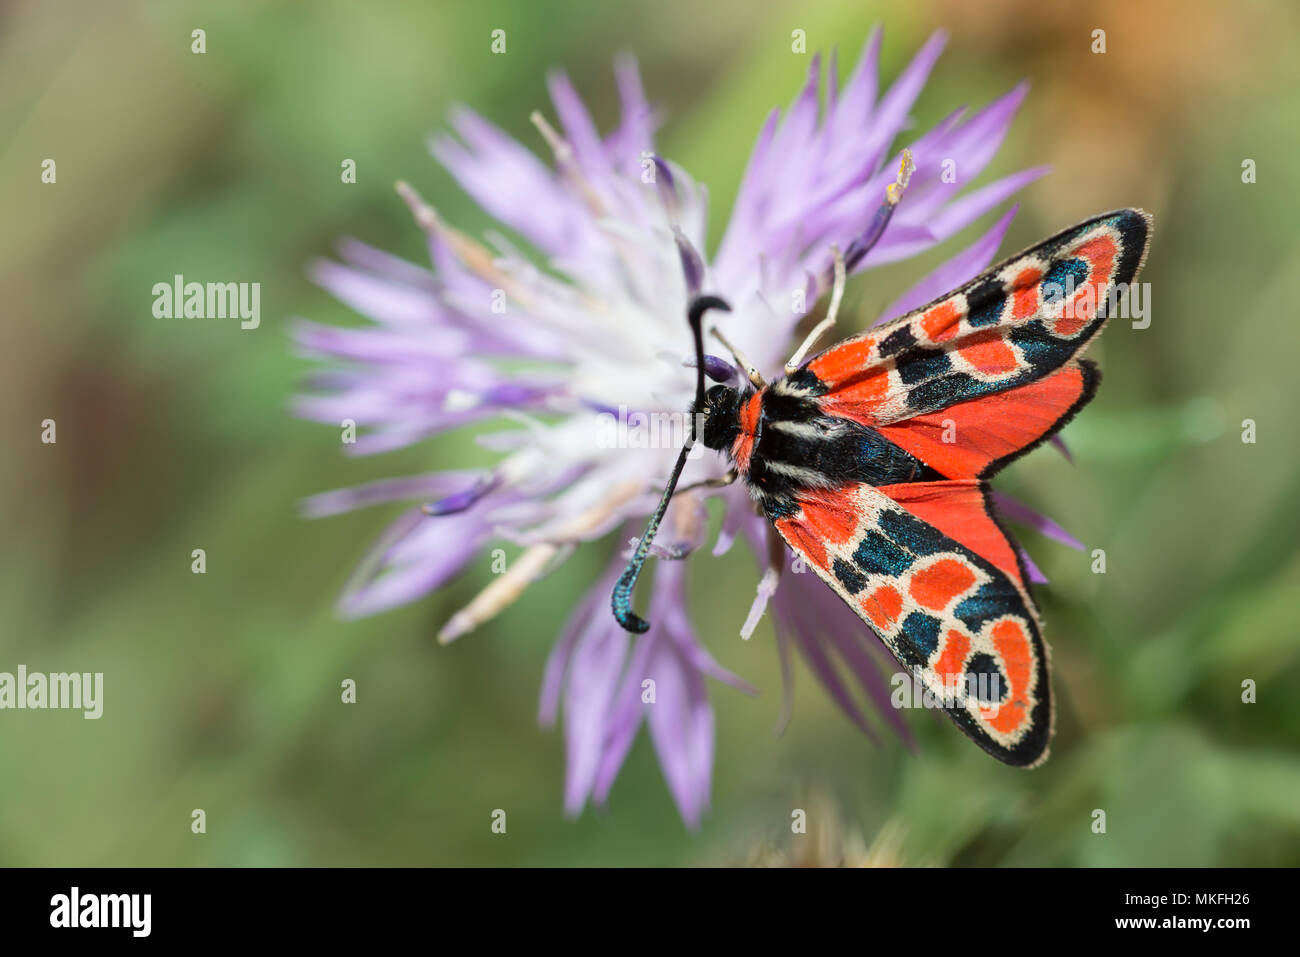 Zygaena (Zygaena fausta) on flower, Mont Ventoux, Provence, France Stock Photo